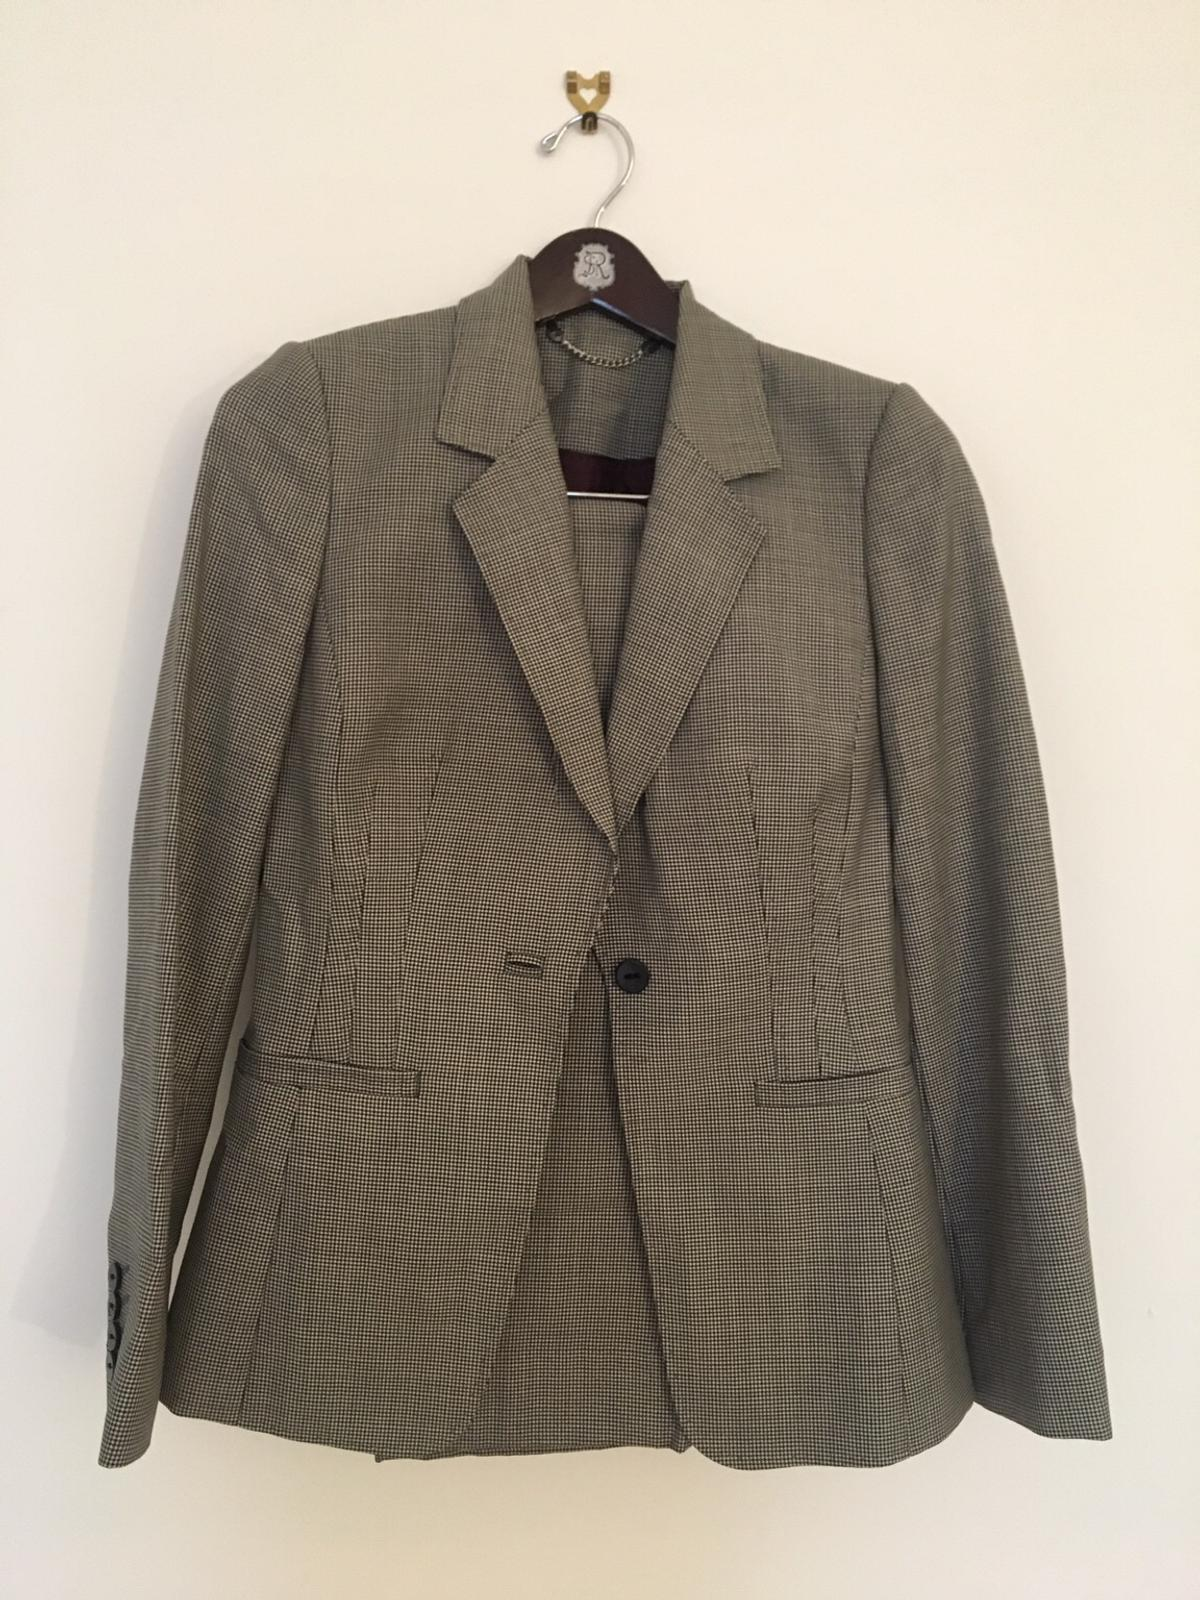 Vintage Austin Reed Womens Suit Size 8 In Sw4 London For 30 00 For Sale Shpock